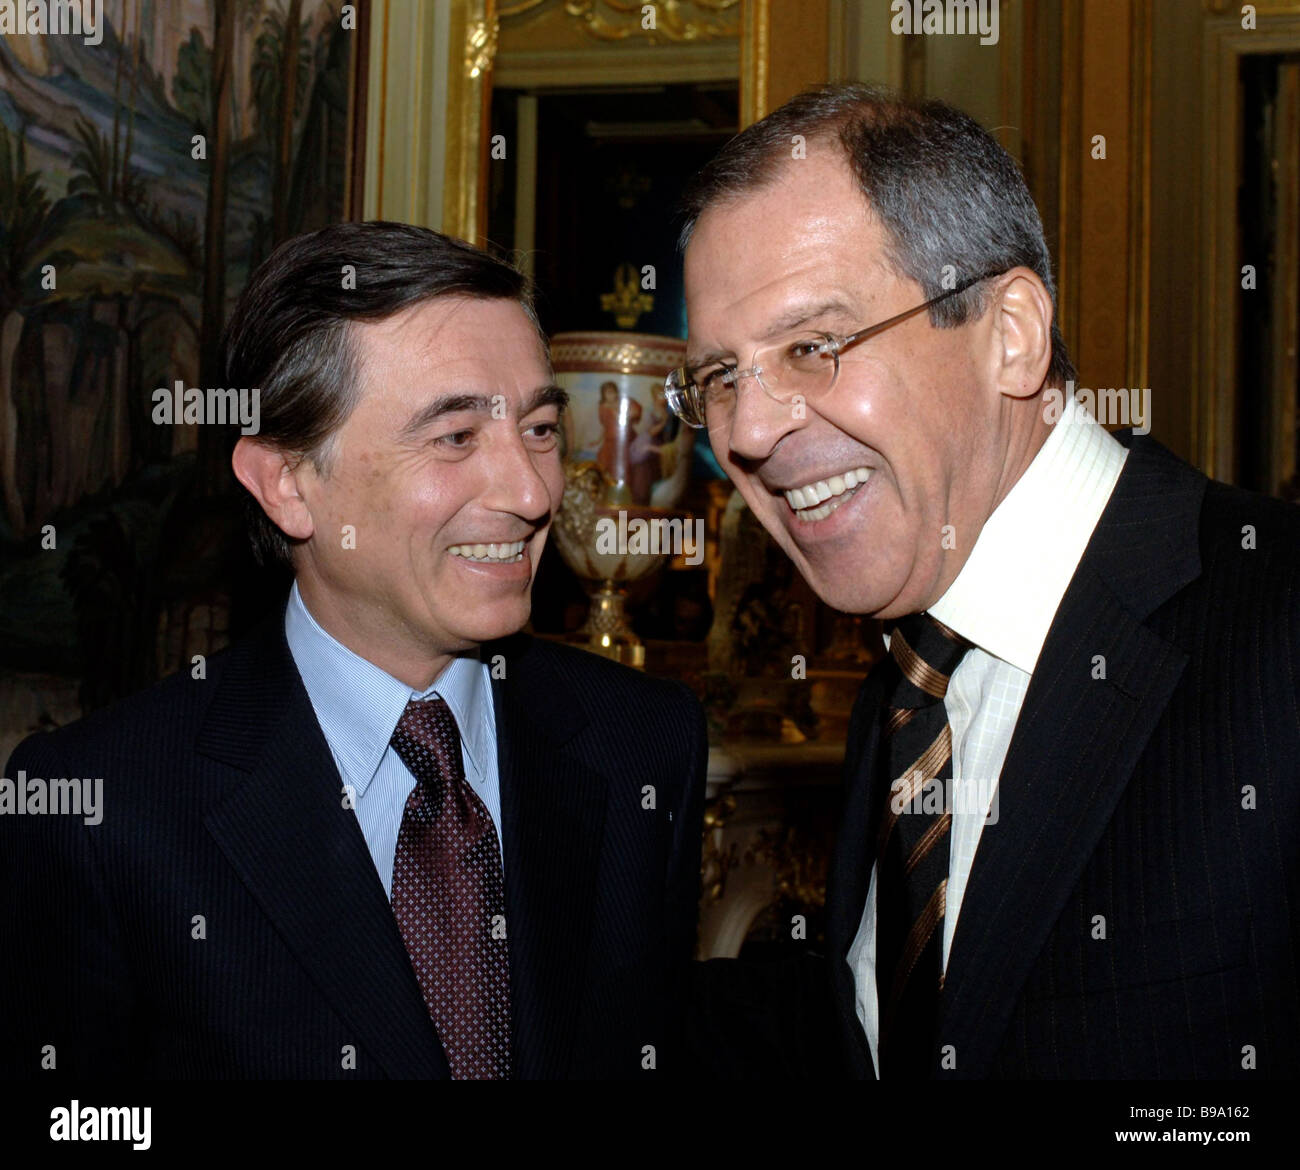 From right to left Russian Foreign Minister Sergey Lavrov and his French counterpart Philip Douste Blazy in talks - Stock Image